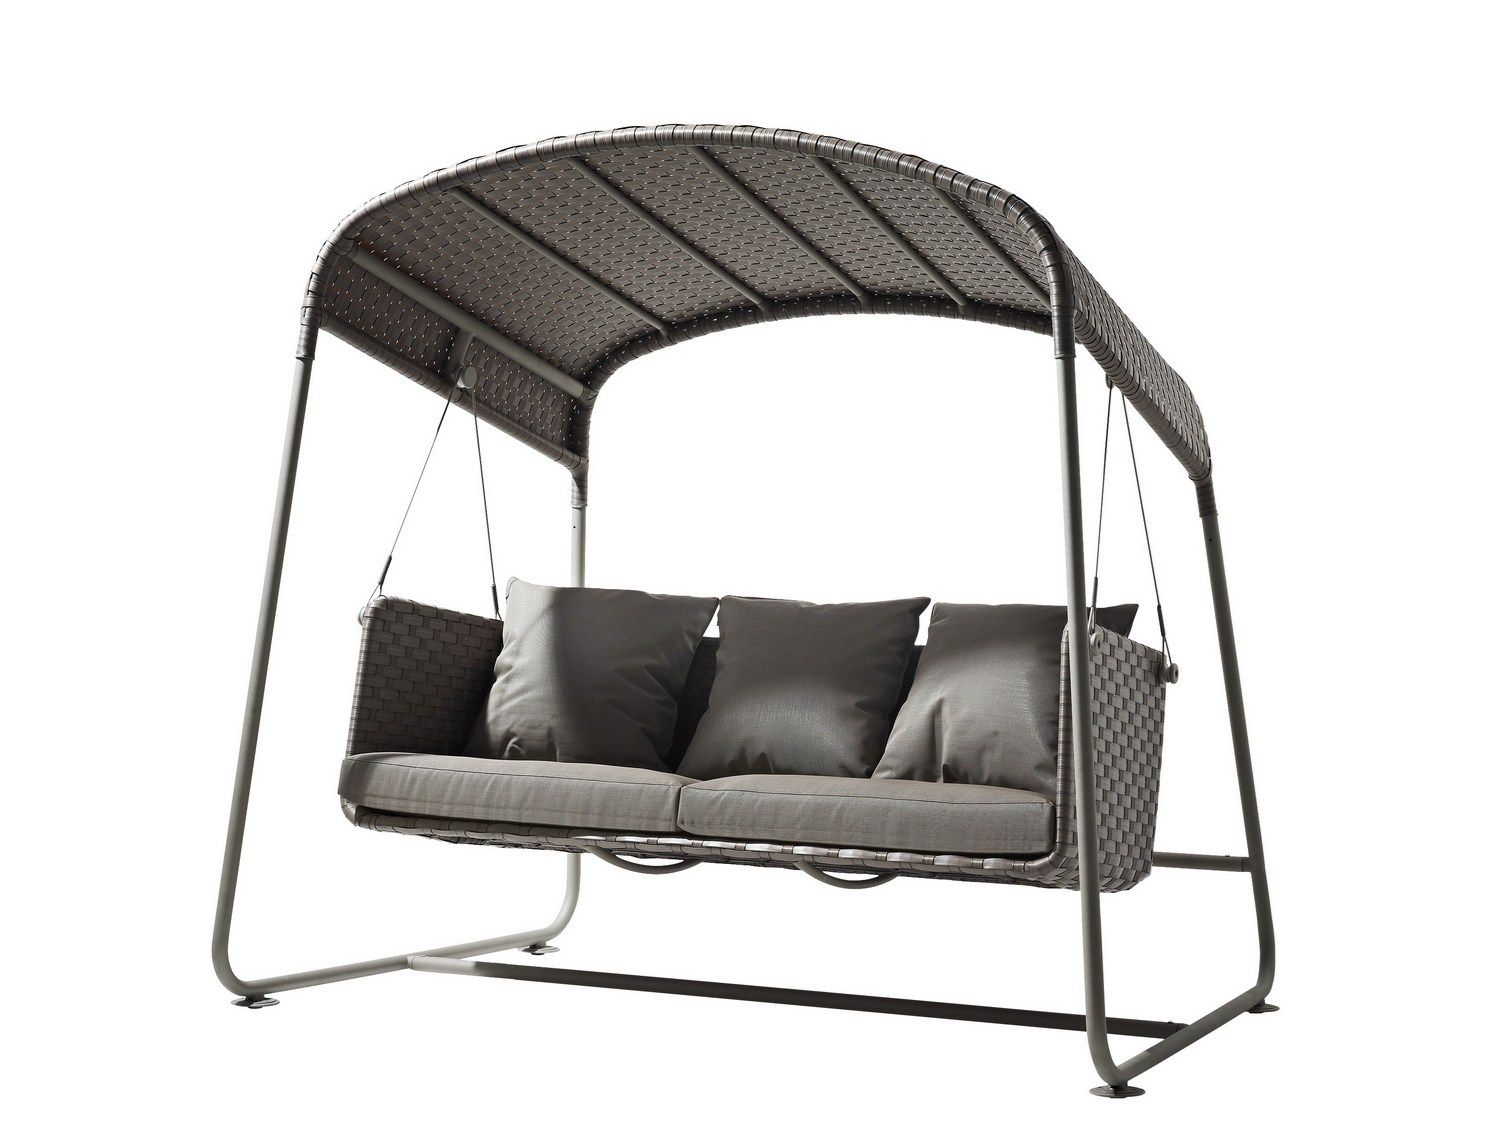 Canopy seater garden swing seat cave by caneline outdoor space